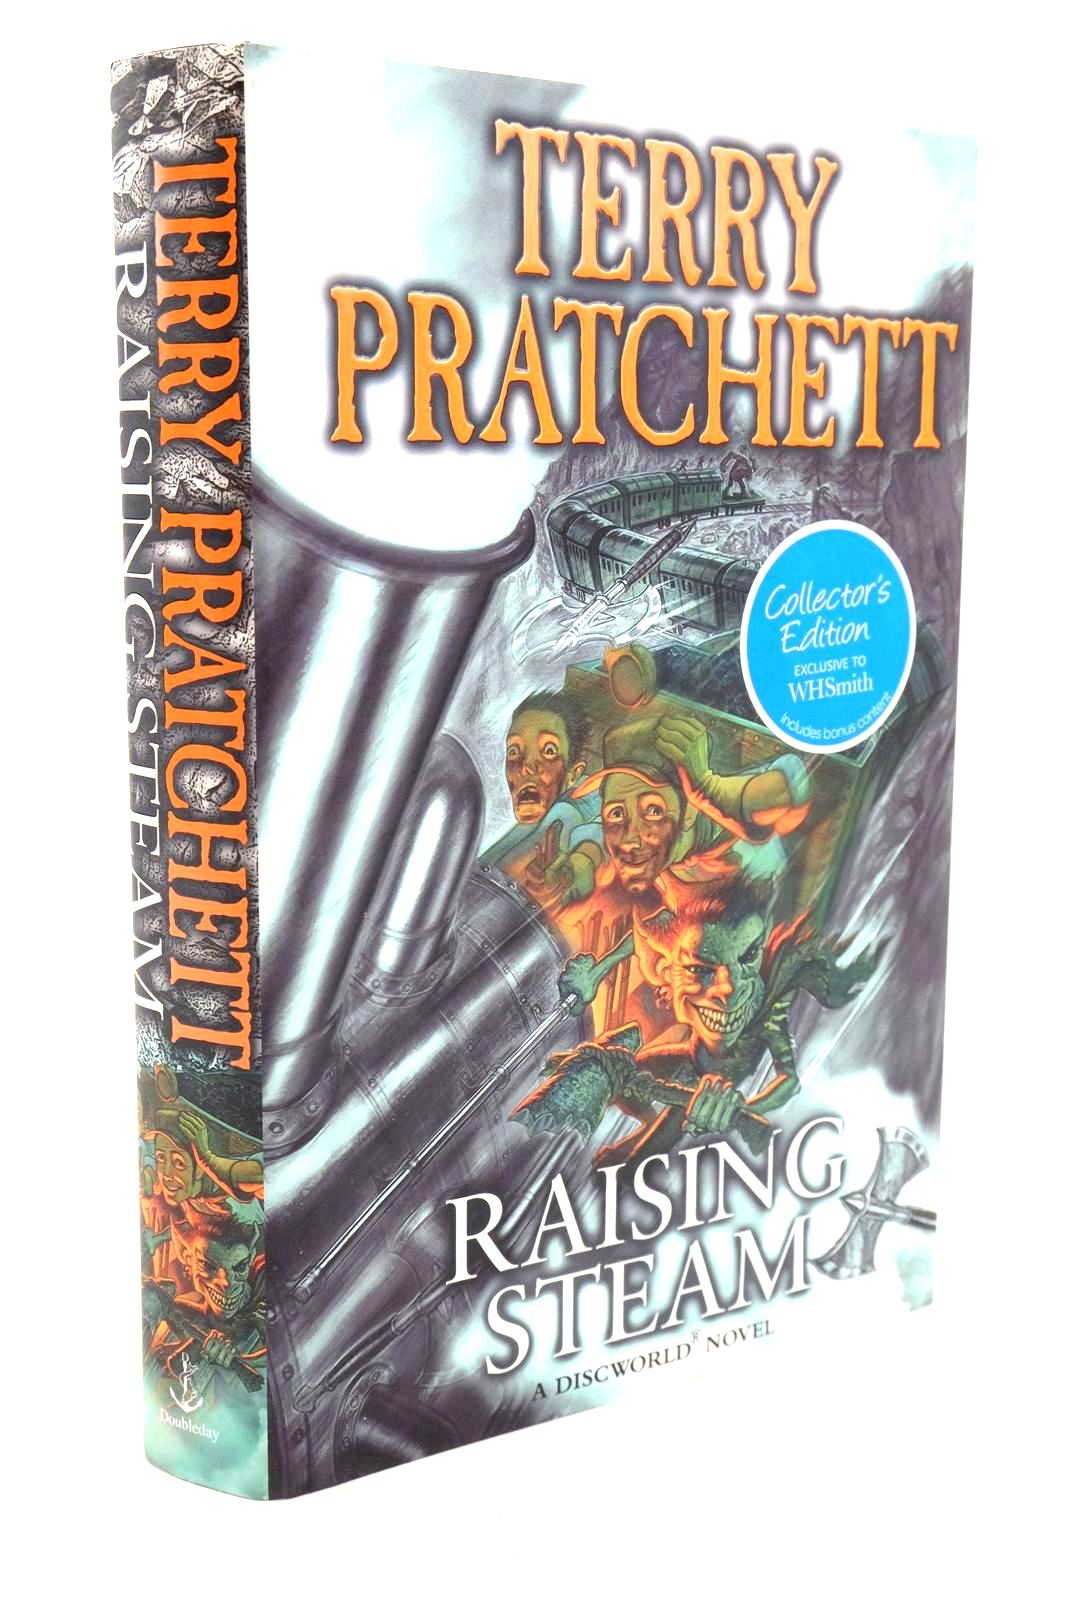 Photo of RAISING STEAM written by Pratchett, Terry published by Doubleday (STOCK CODE: 1319886)  for sale by Stella & Rose's Books